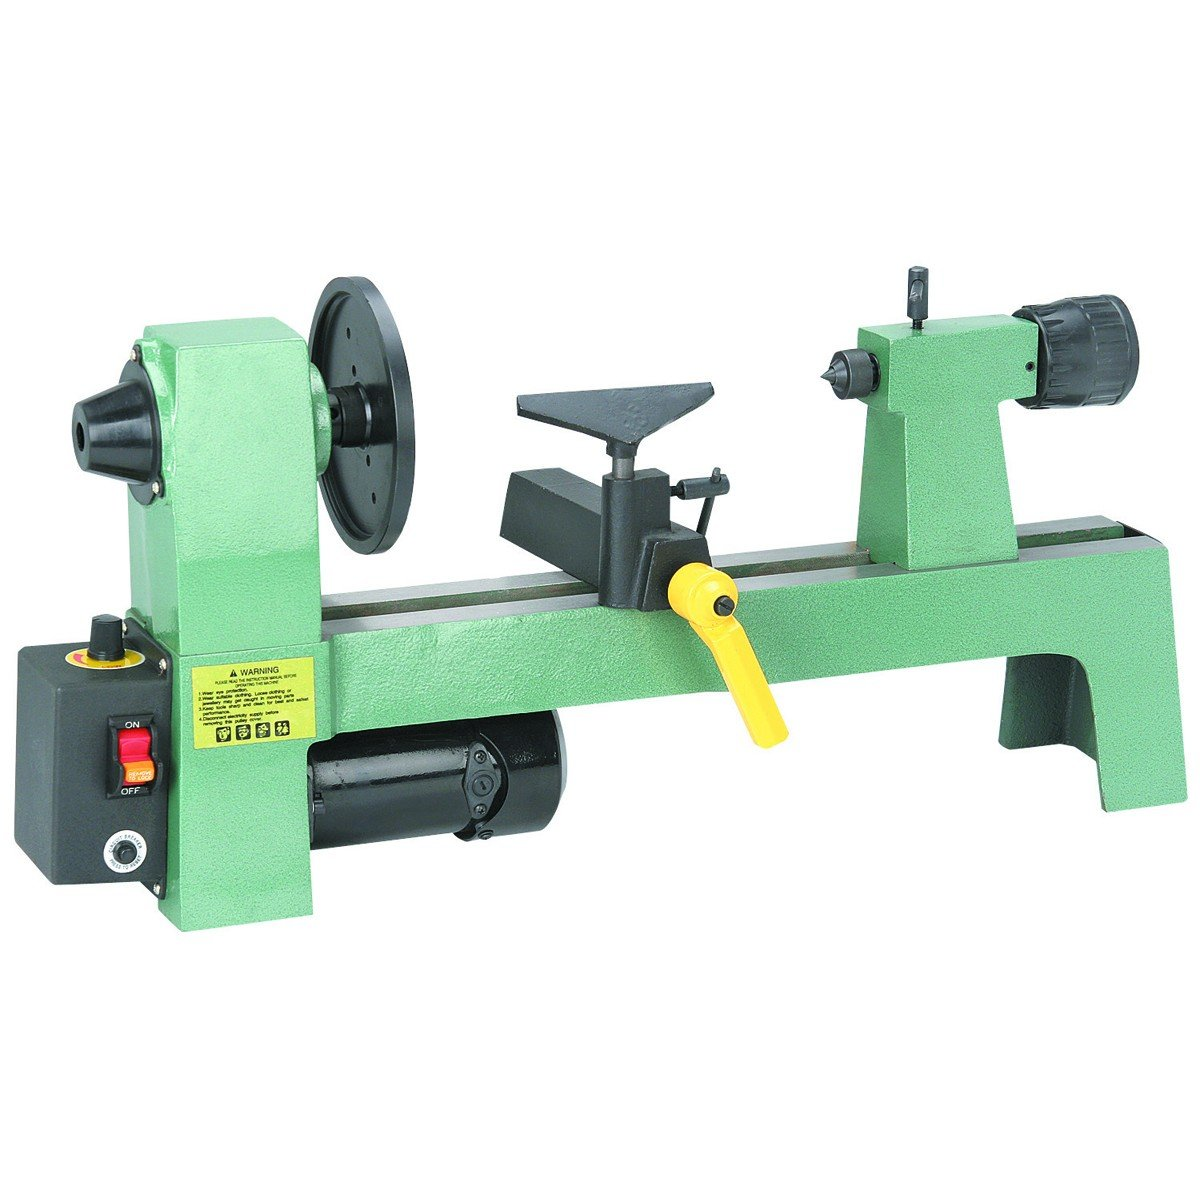 Bench Top Wood Lathe 8in x 12in